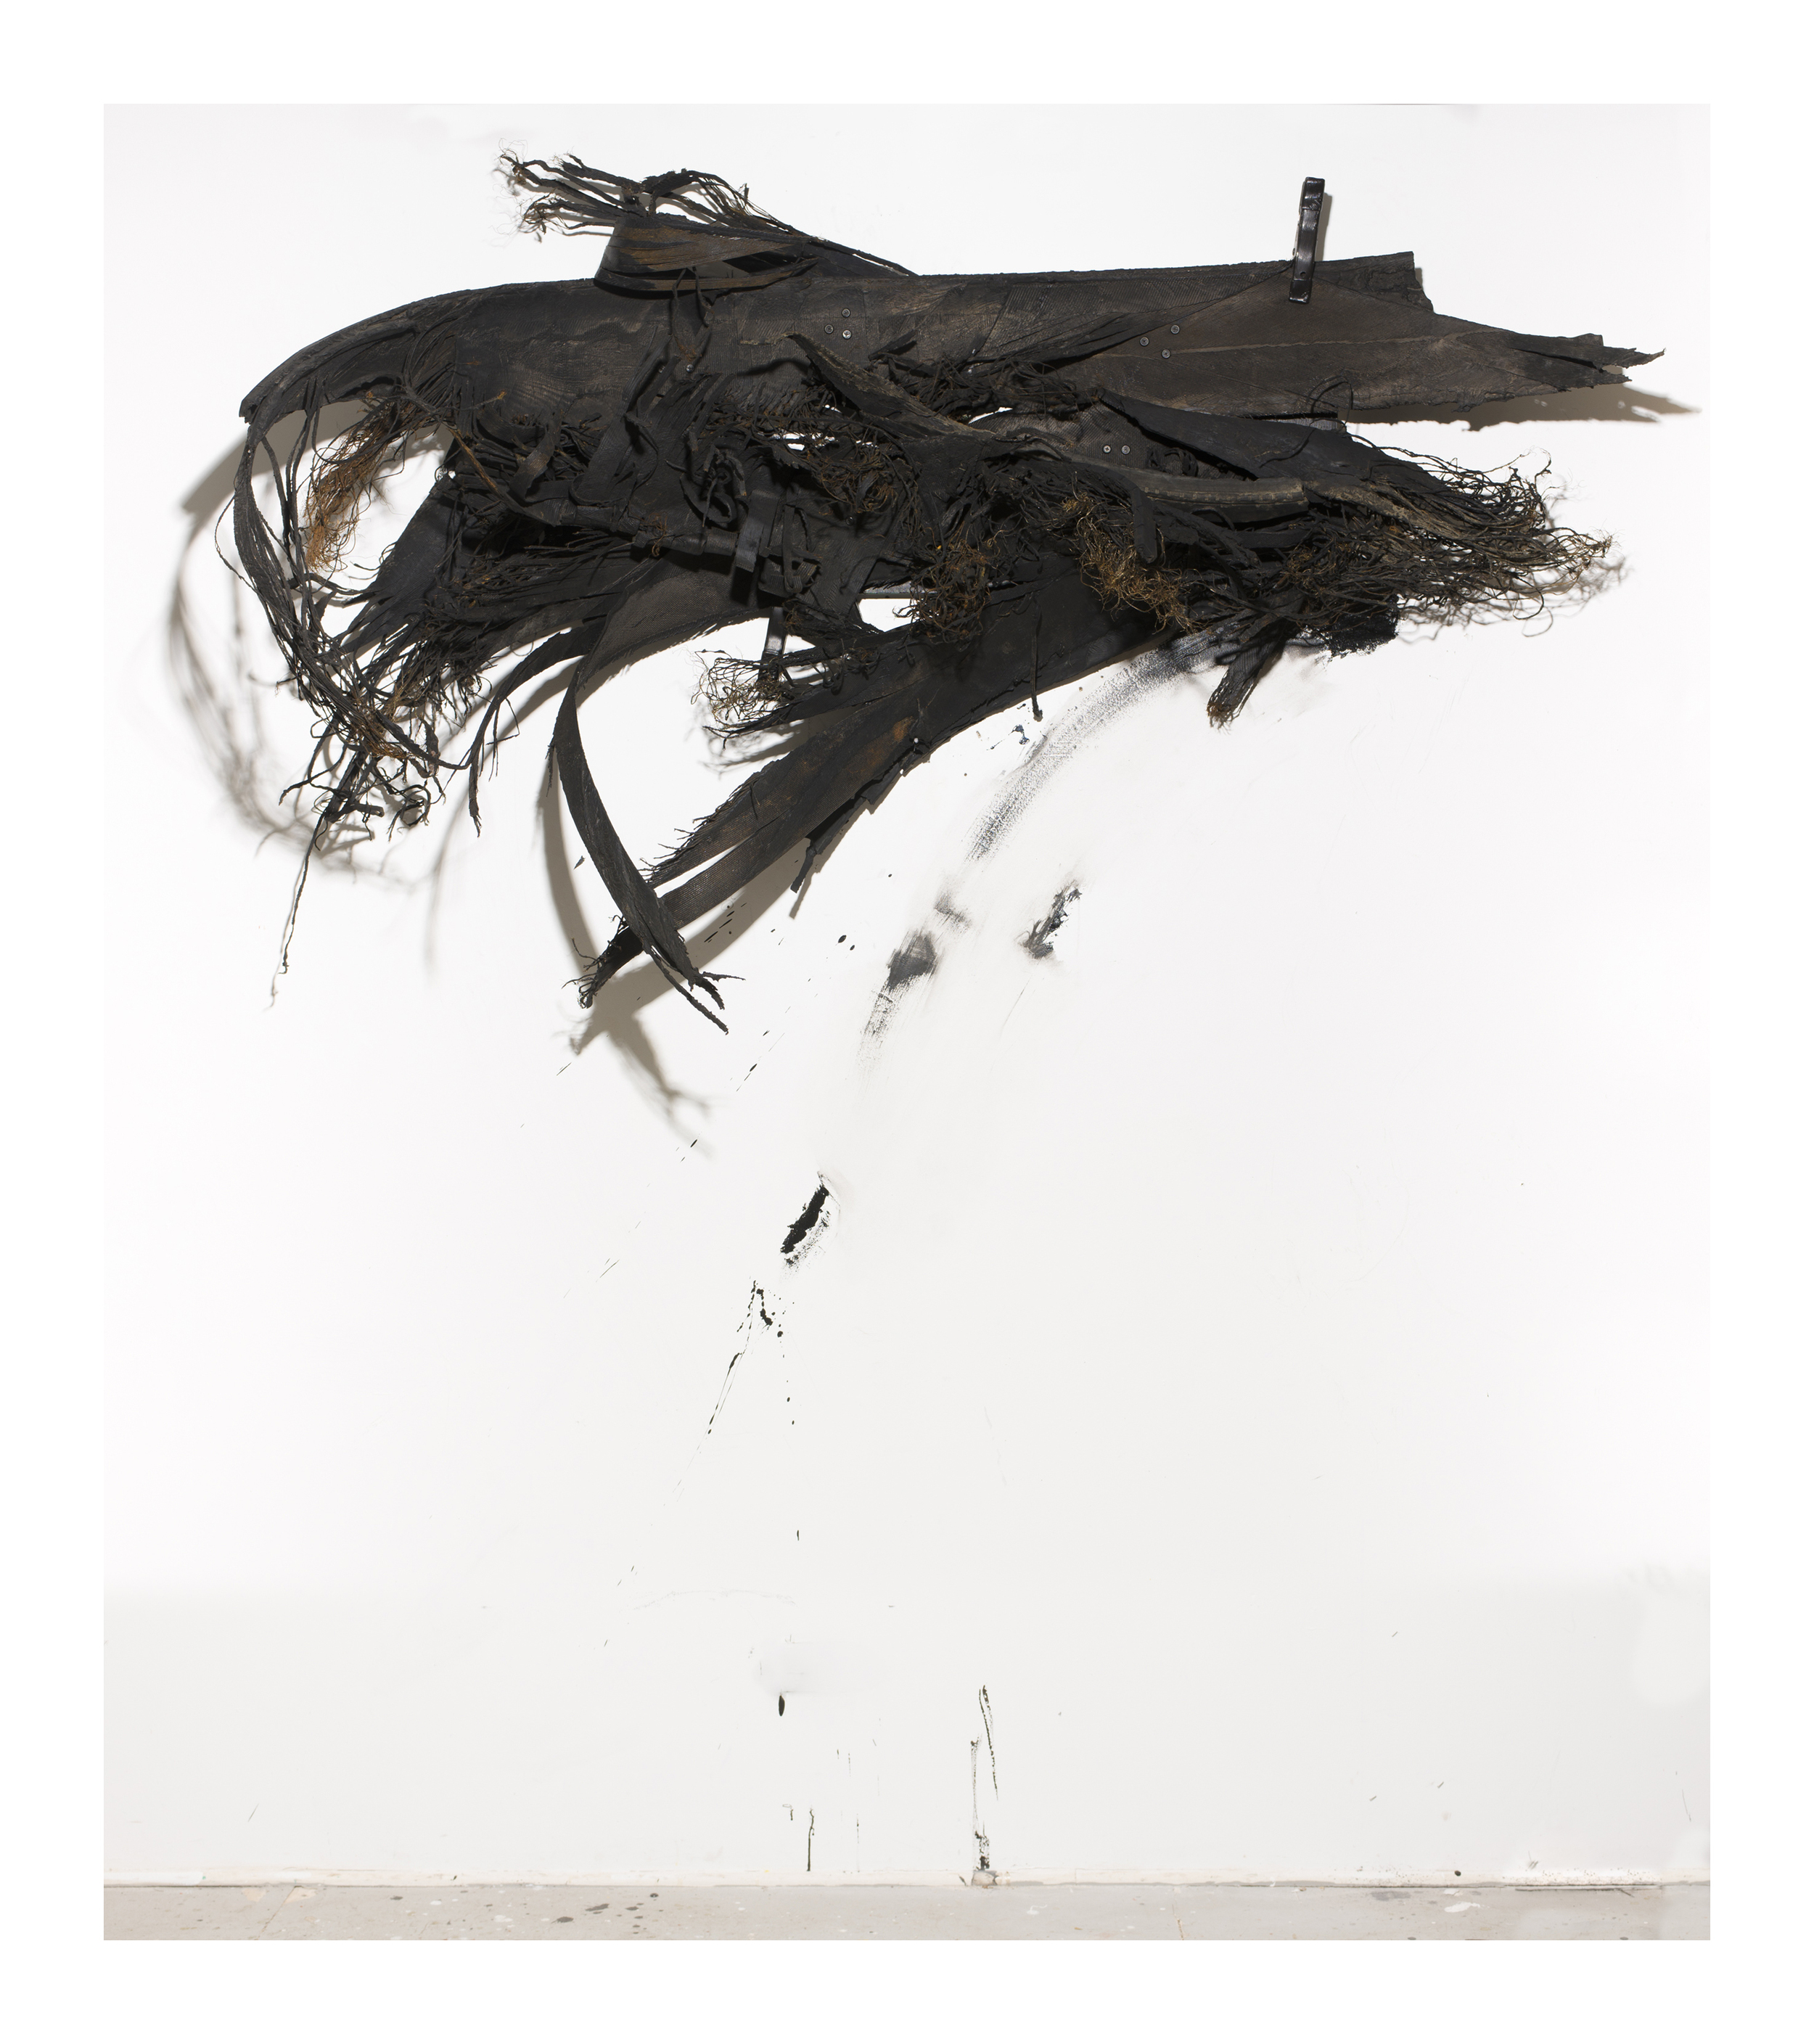 BLOW-OUT: II (115) , 60 X 96 in appx., tire, wire, clamps, acrylic.